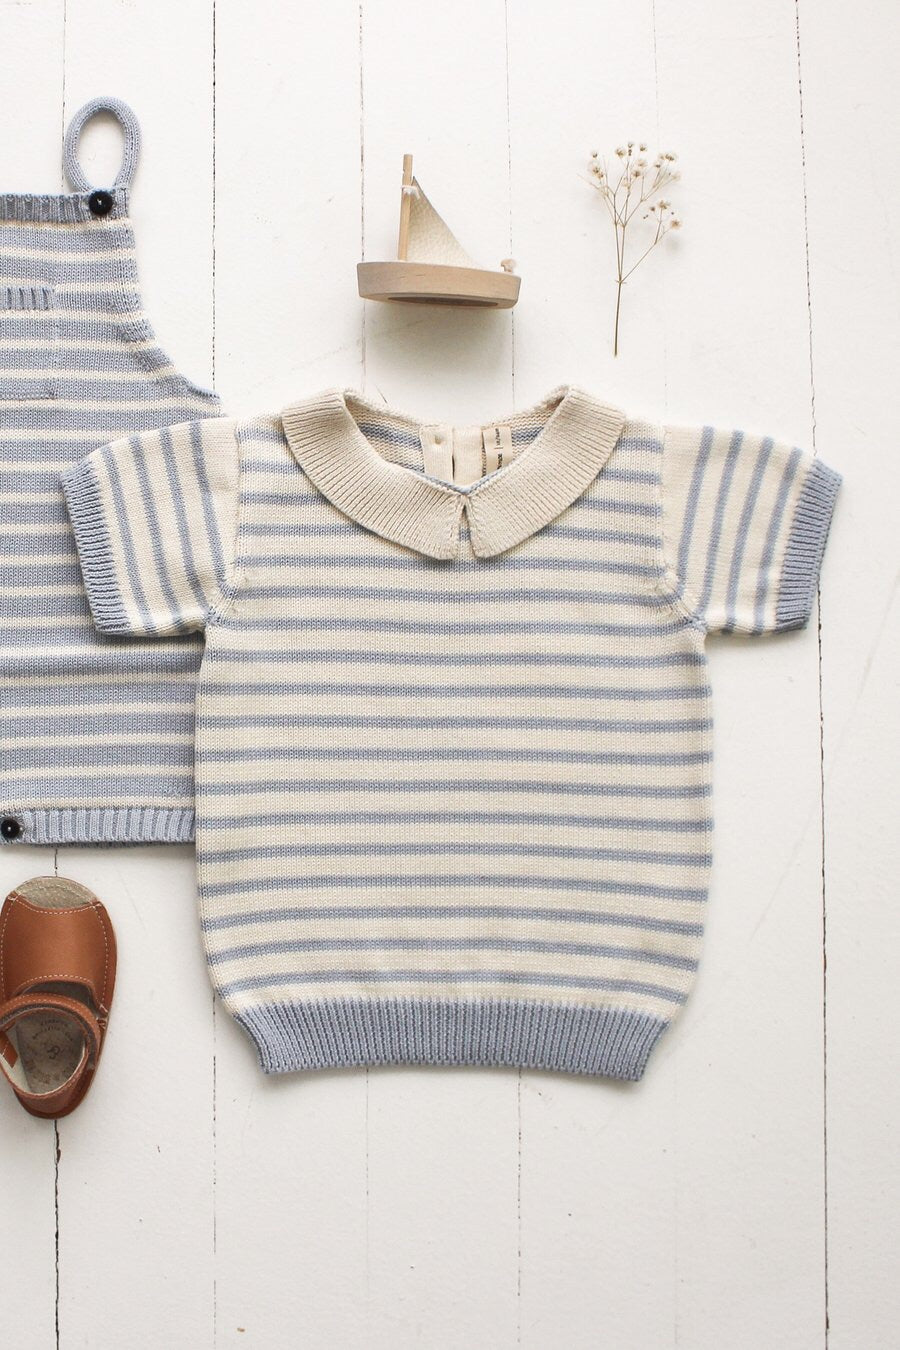 Fin & Vince knit collar top - dusty blue/ cream